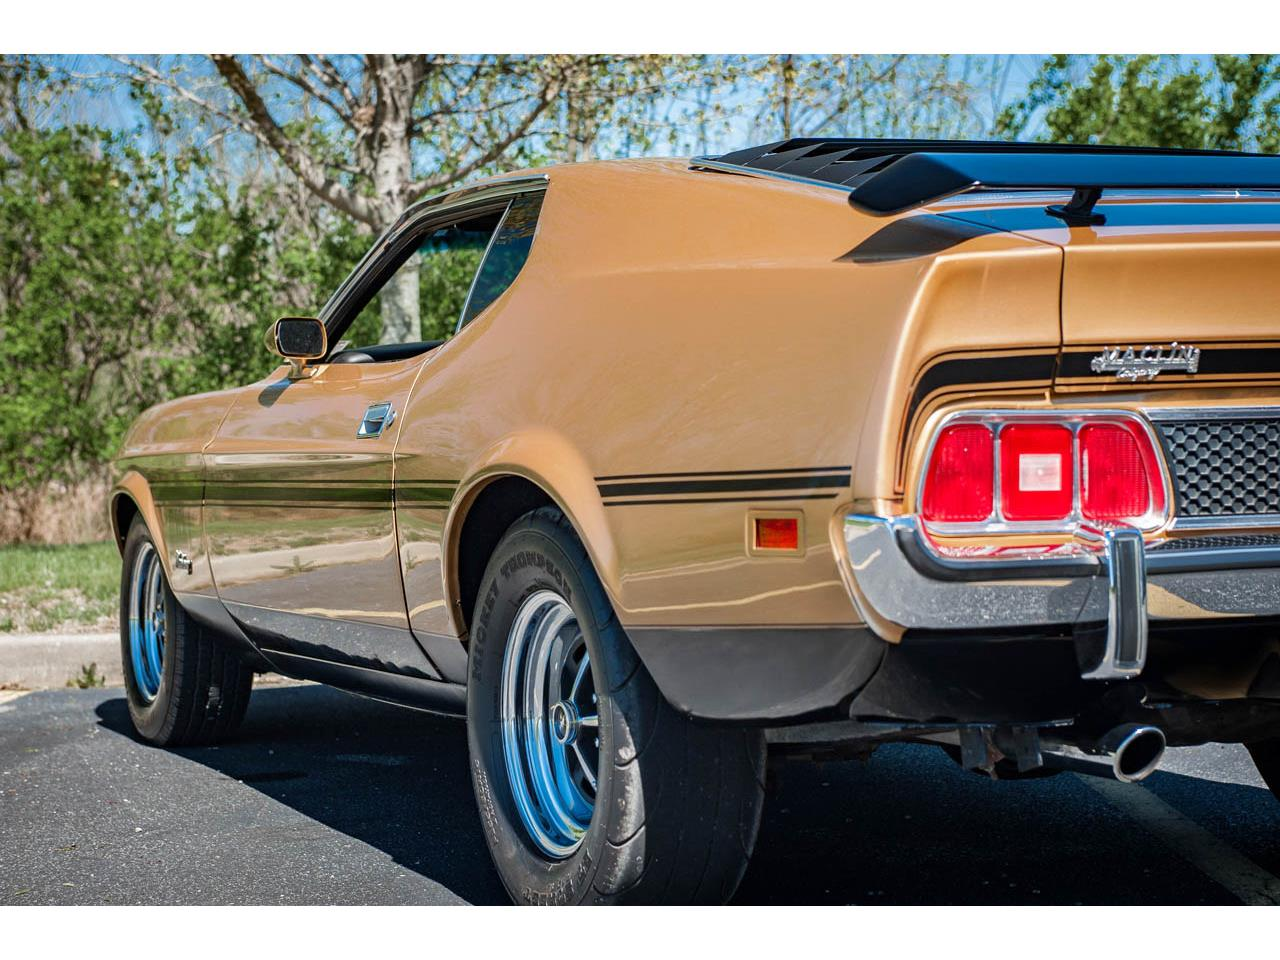 Large Picture of 1973 Ford Mustang - $34,500.00 Offered by Gateway Classic Cars - St. Louis - QB8T